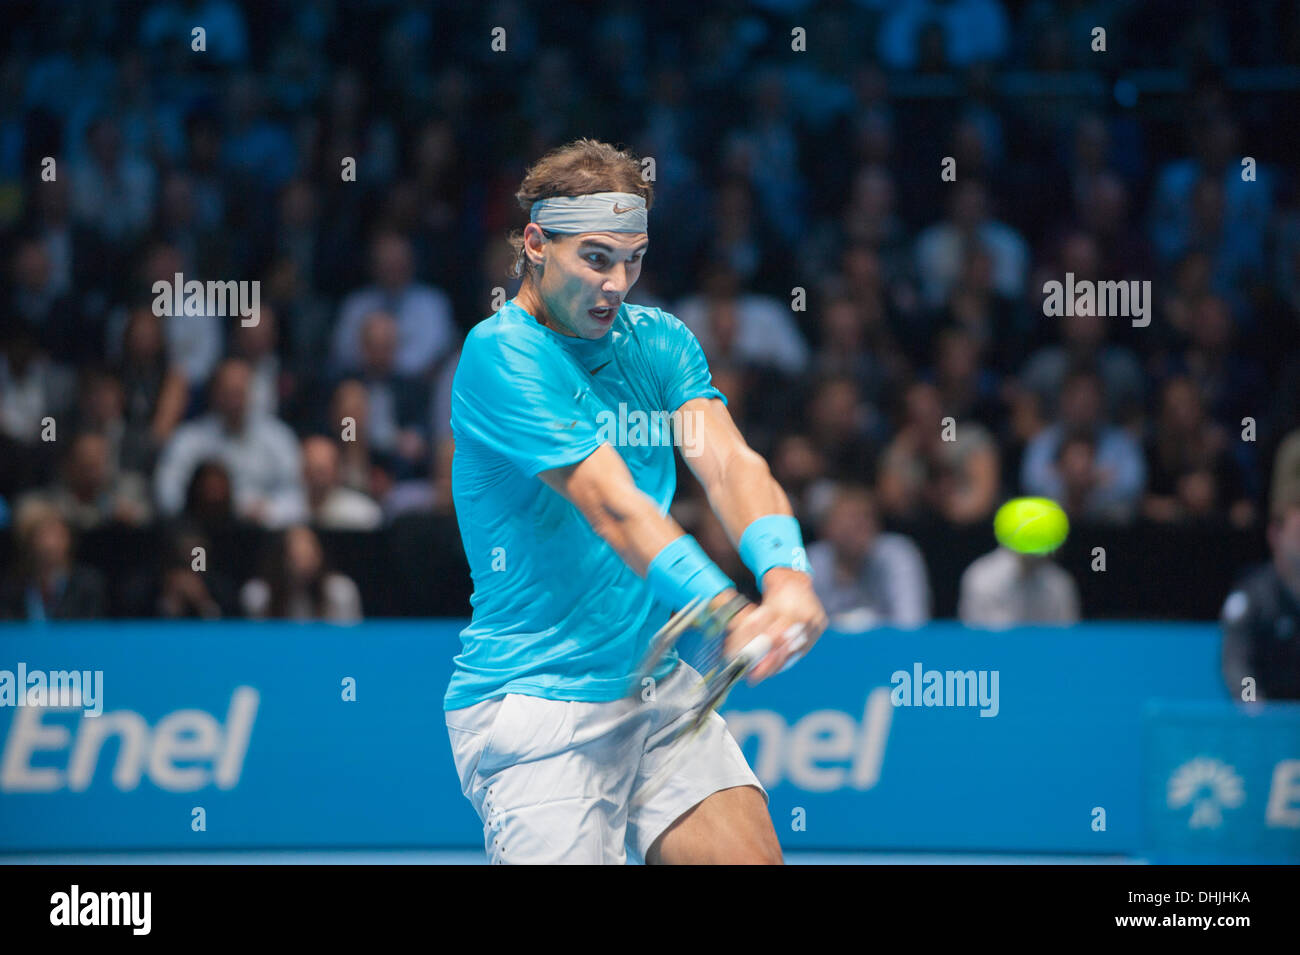 The O2, London, UK. 11 Nov, 2013. Rafael Nadal in action at the ATP World Tour Finals, eventually losing the match 6-3 6-4 to Novak Djokovic © Malcolm Park editorial/Alamy Live News - Stock Image